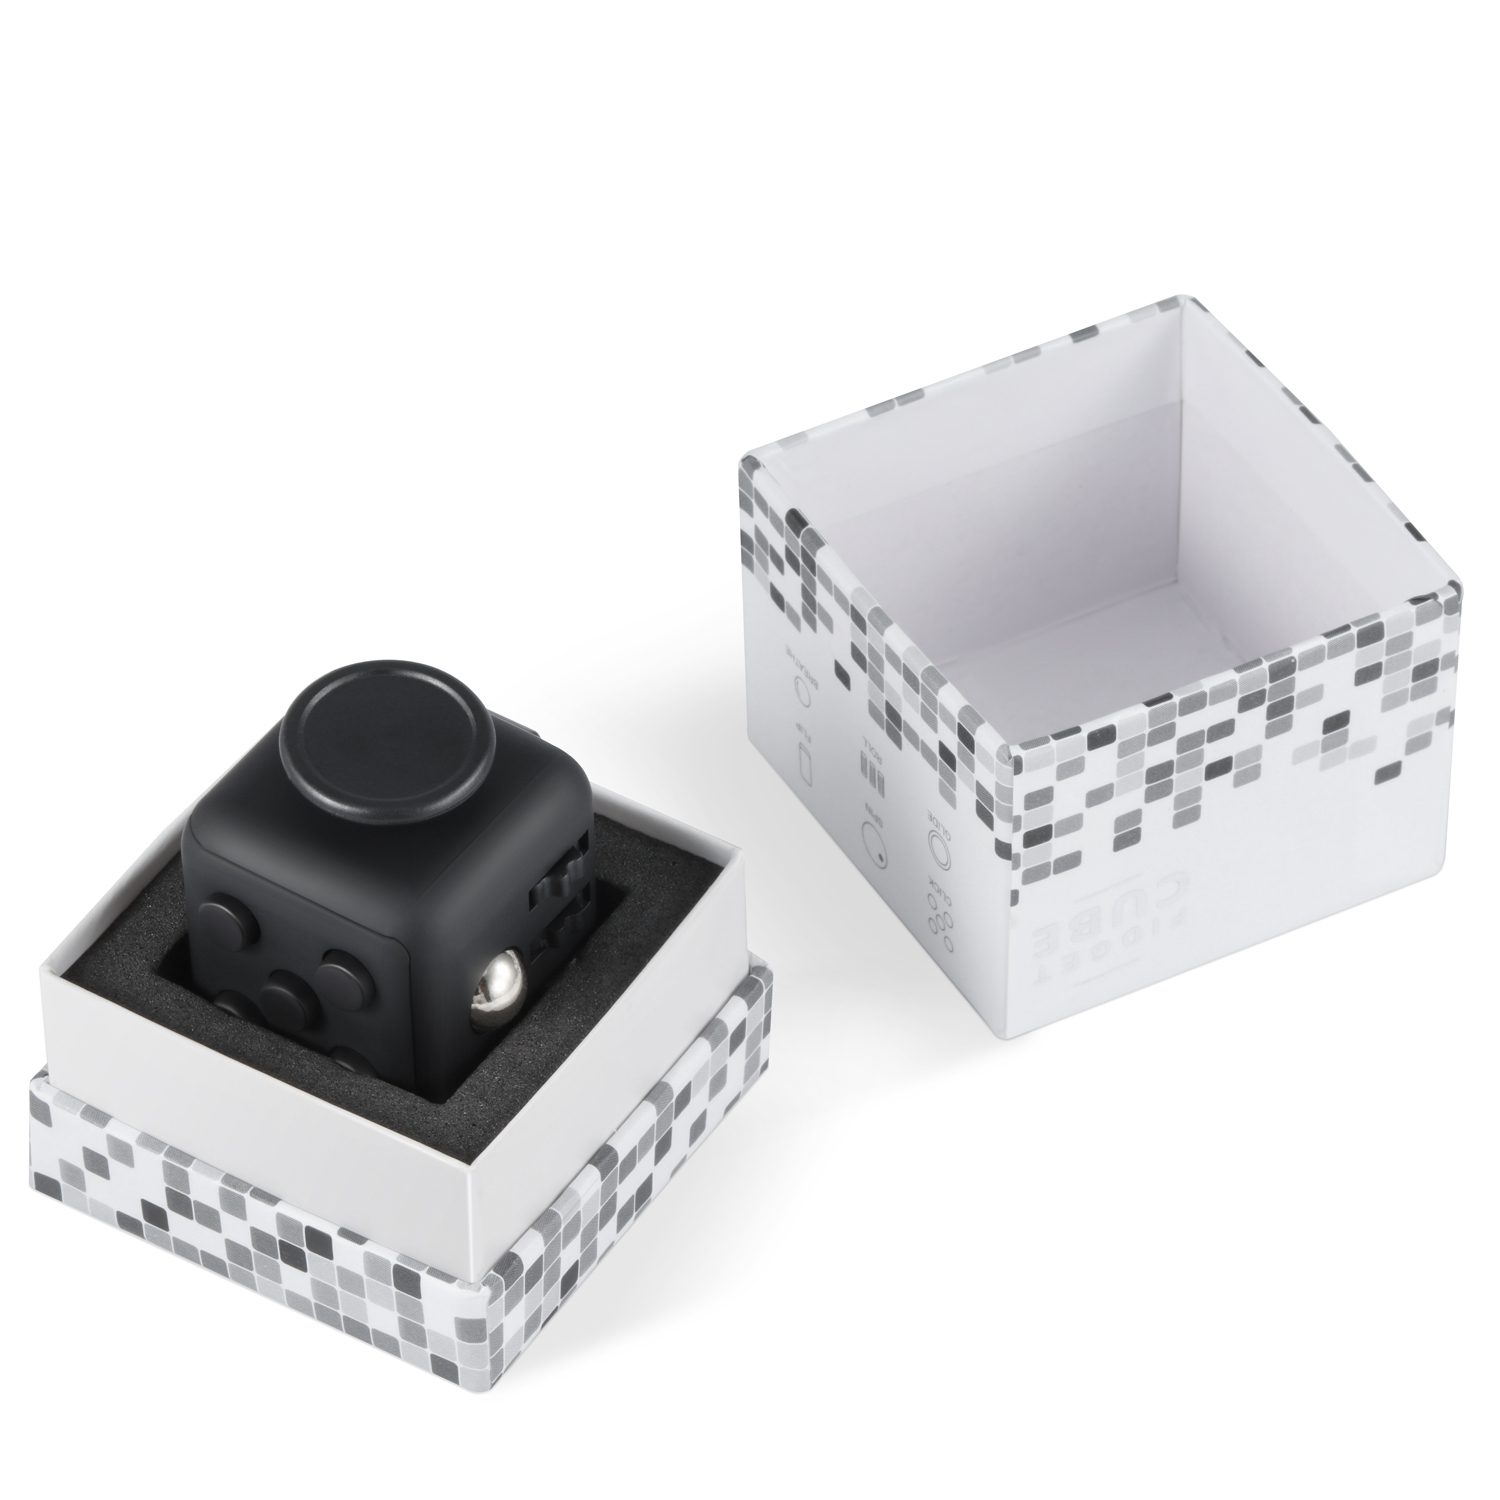 magic original fidget cube xmas children toy adults fun. Black Bedroom Furniture Sets. Home Design Ideas